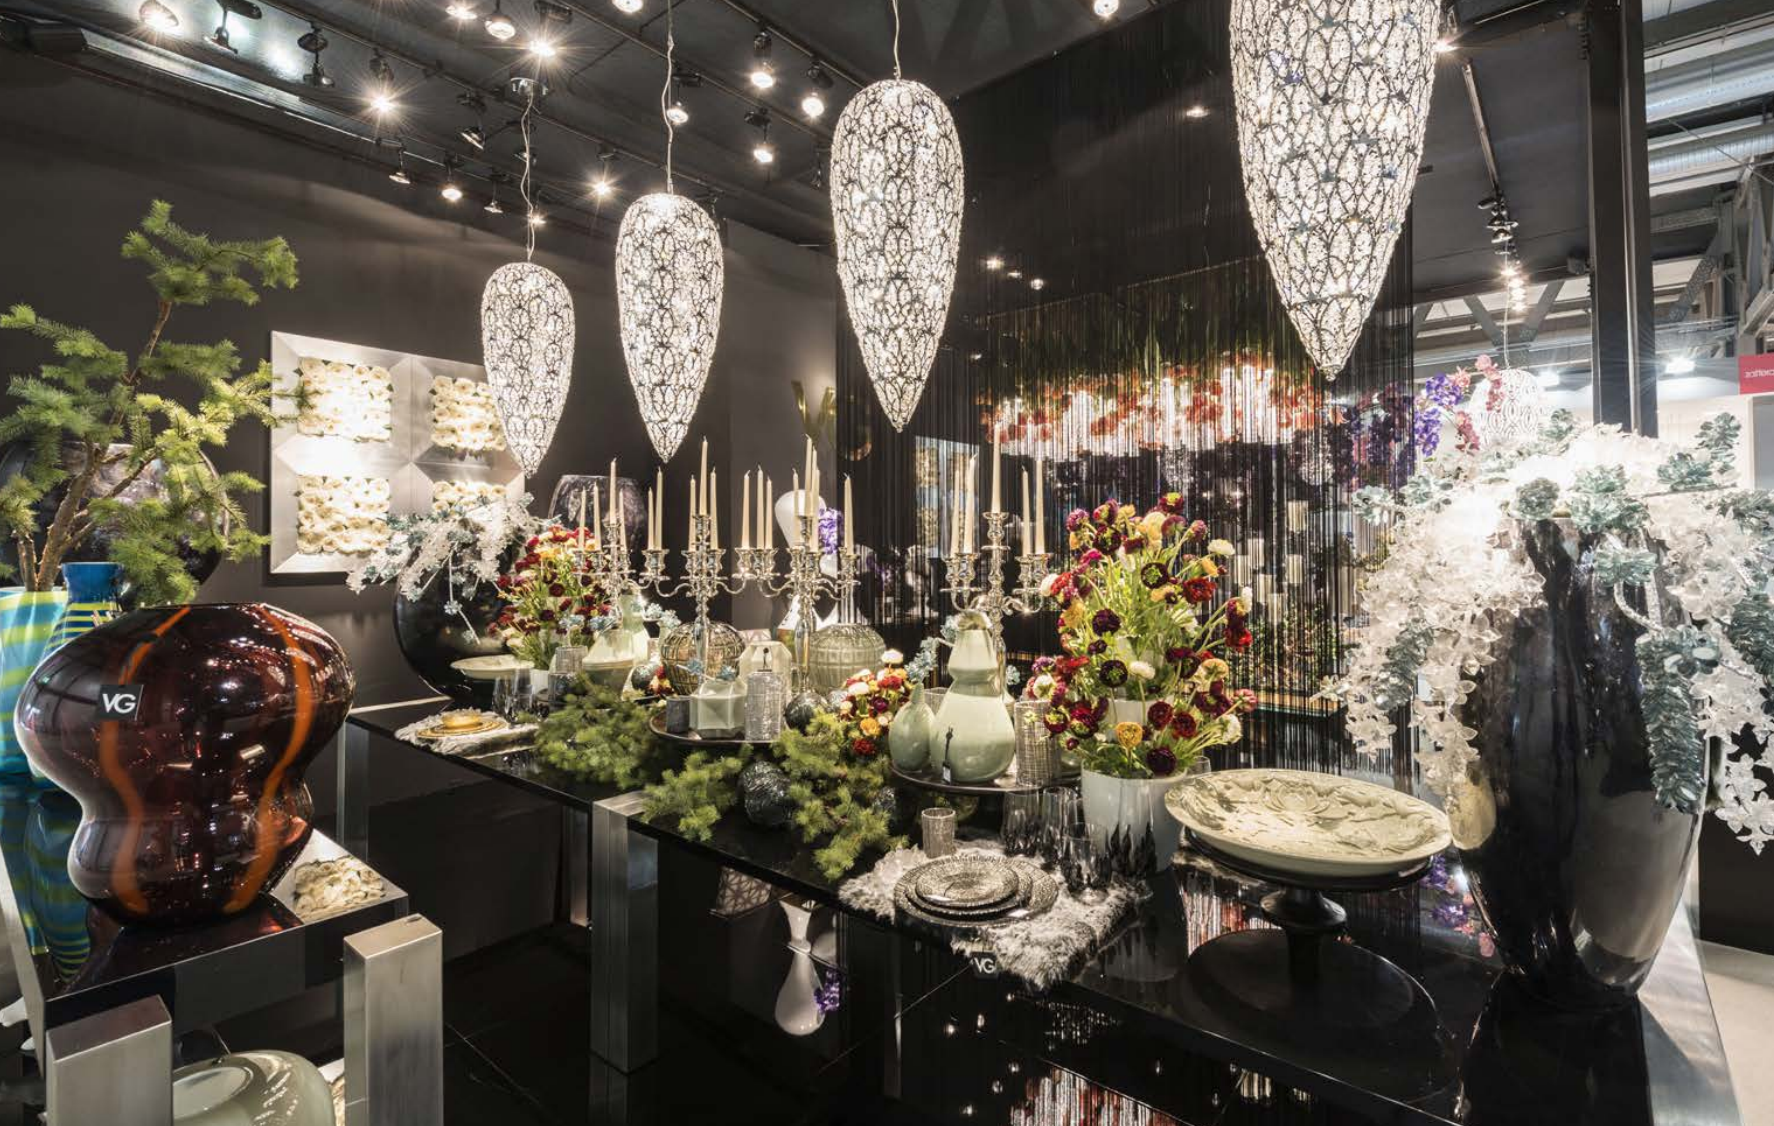 VG offers a selection of their home decor collection with special net prices via Masha Shapiro Agency UK.png